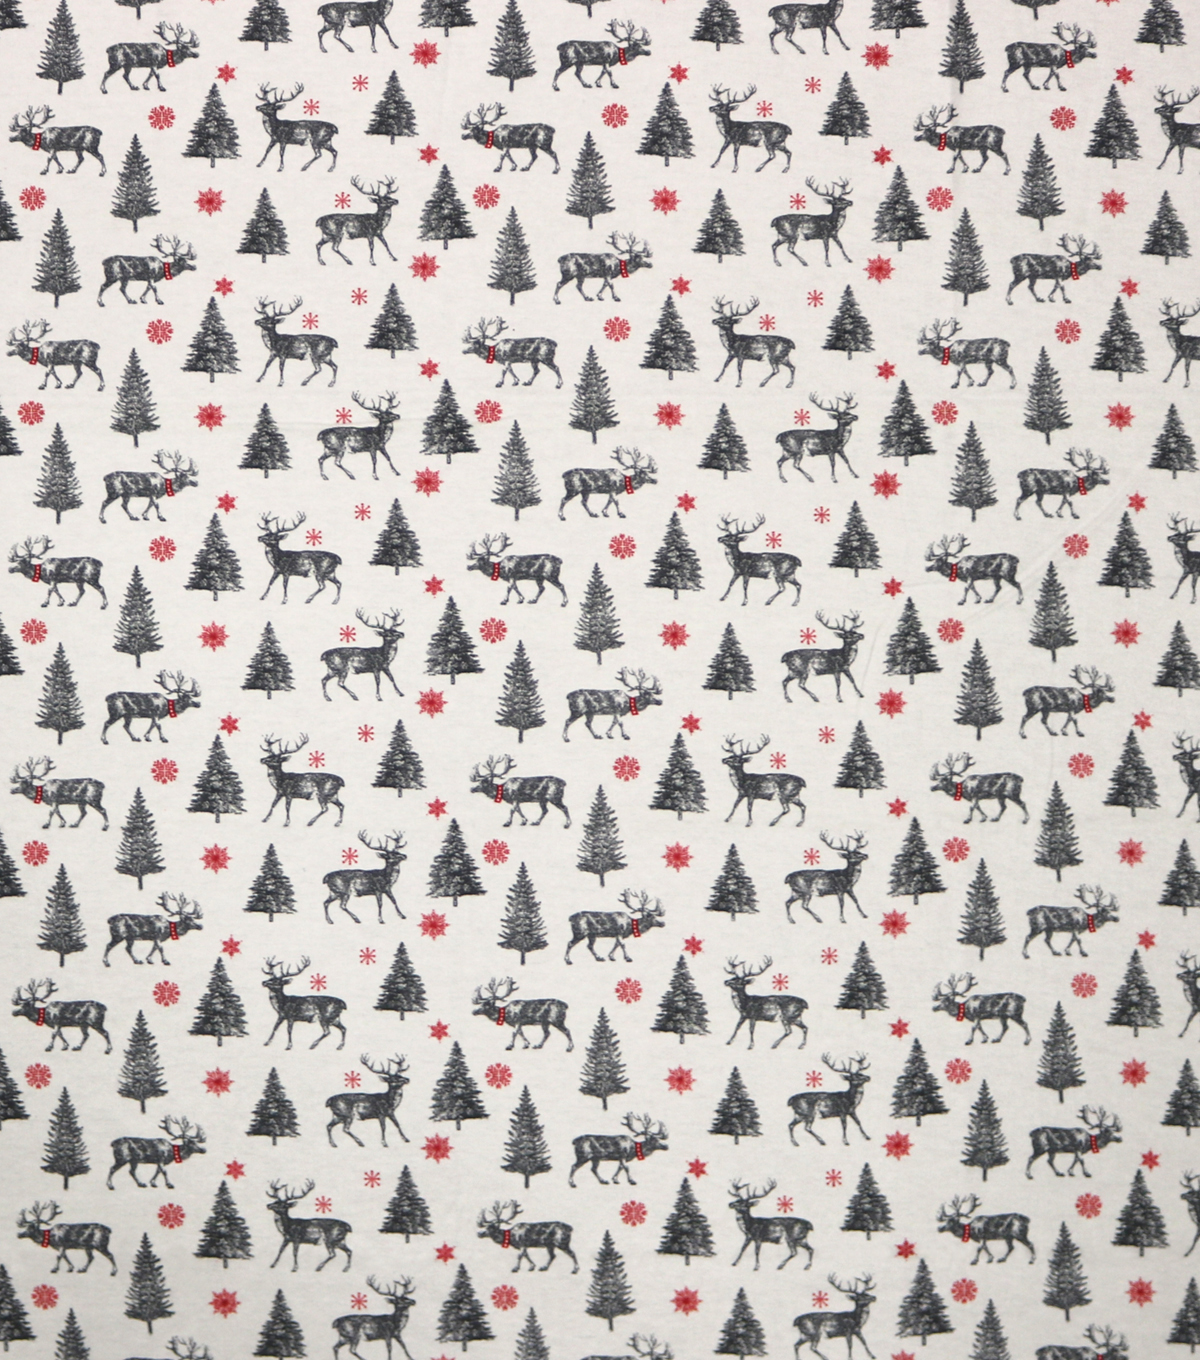 Super Snuggle Flannel Fabric-Black & White Deer and Trees